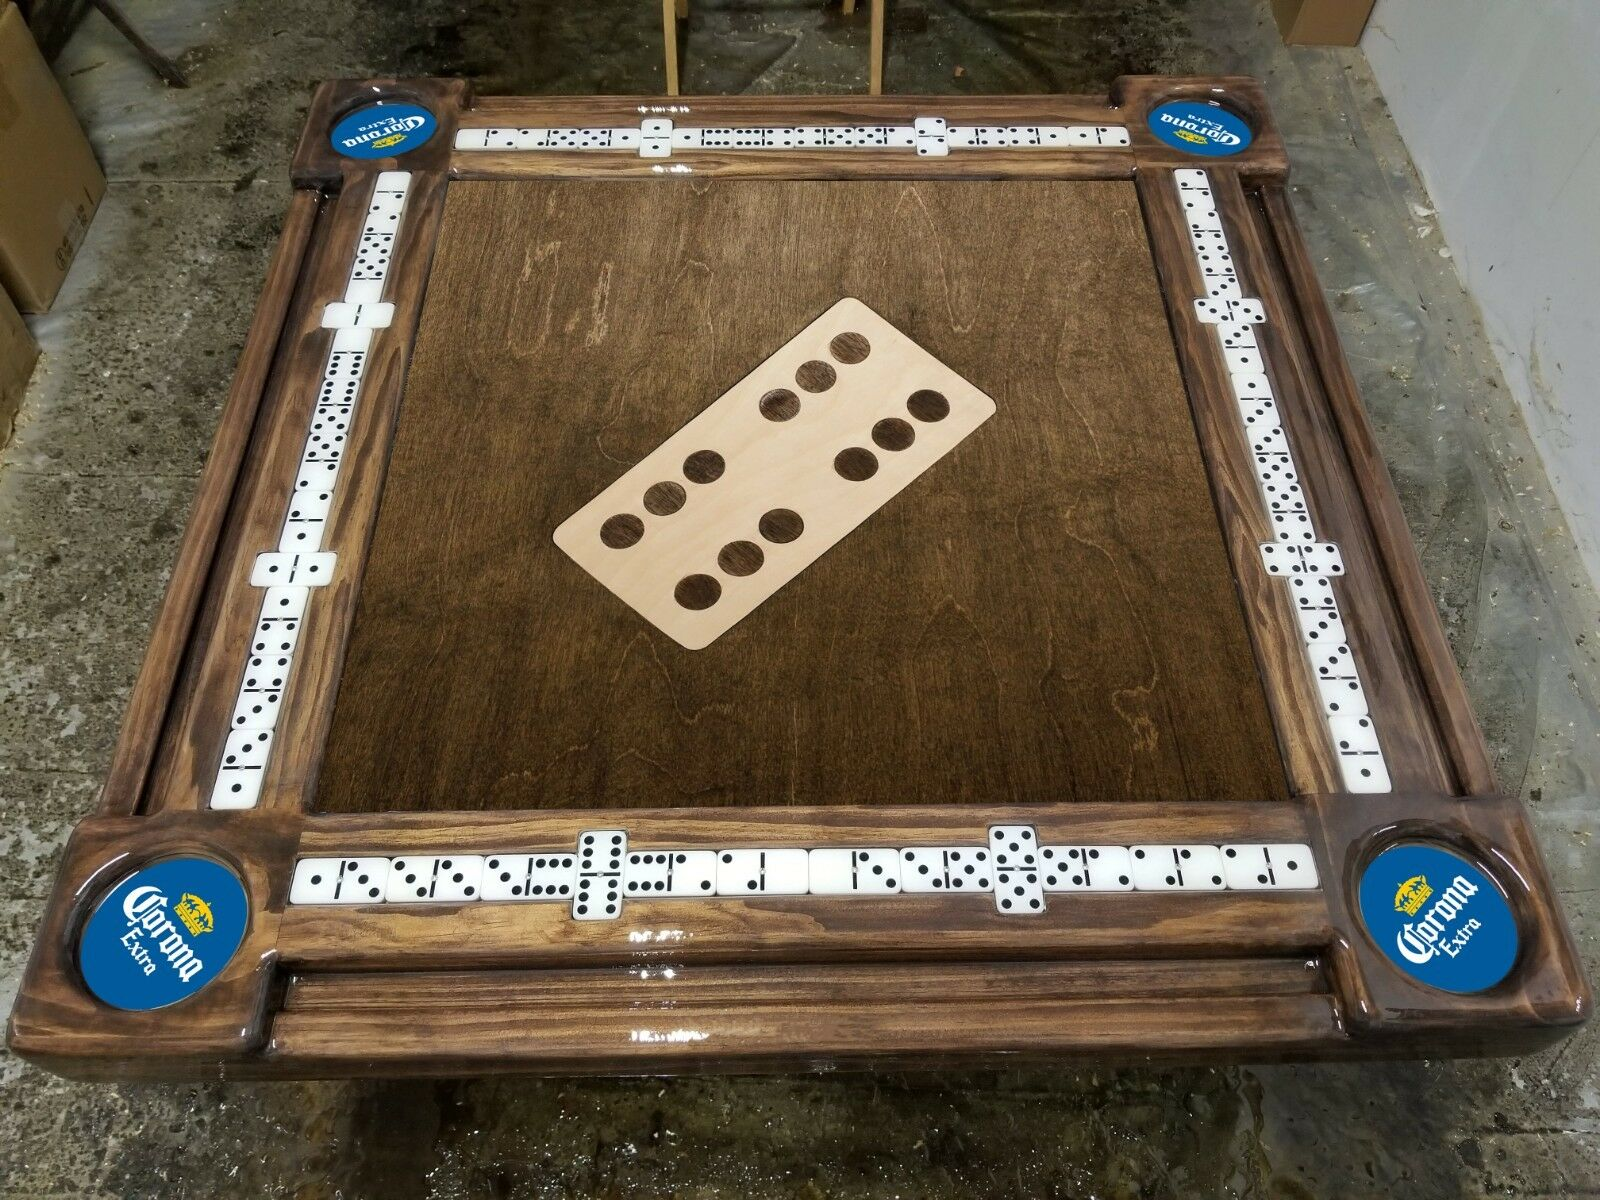 Inlay Center Domino with Corna Cup Holders Domino Table by Domino Tables by Art